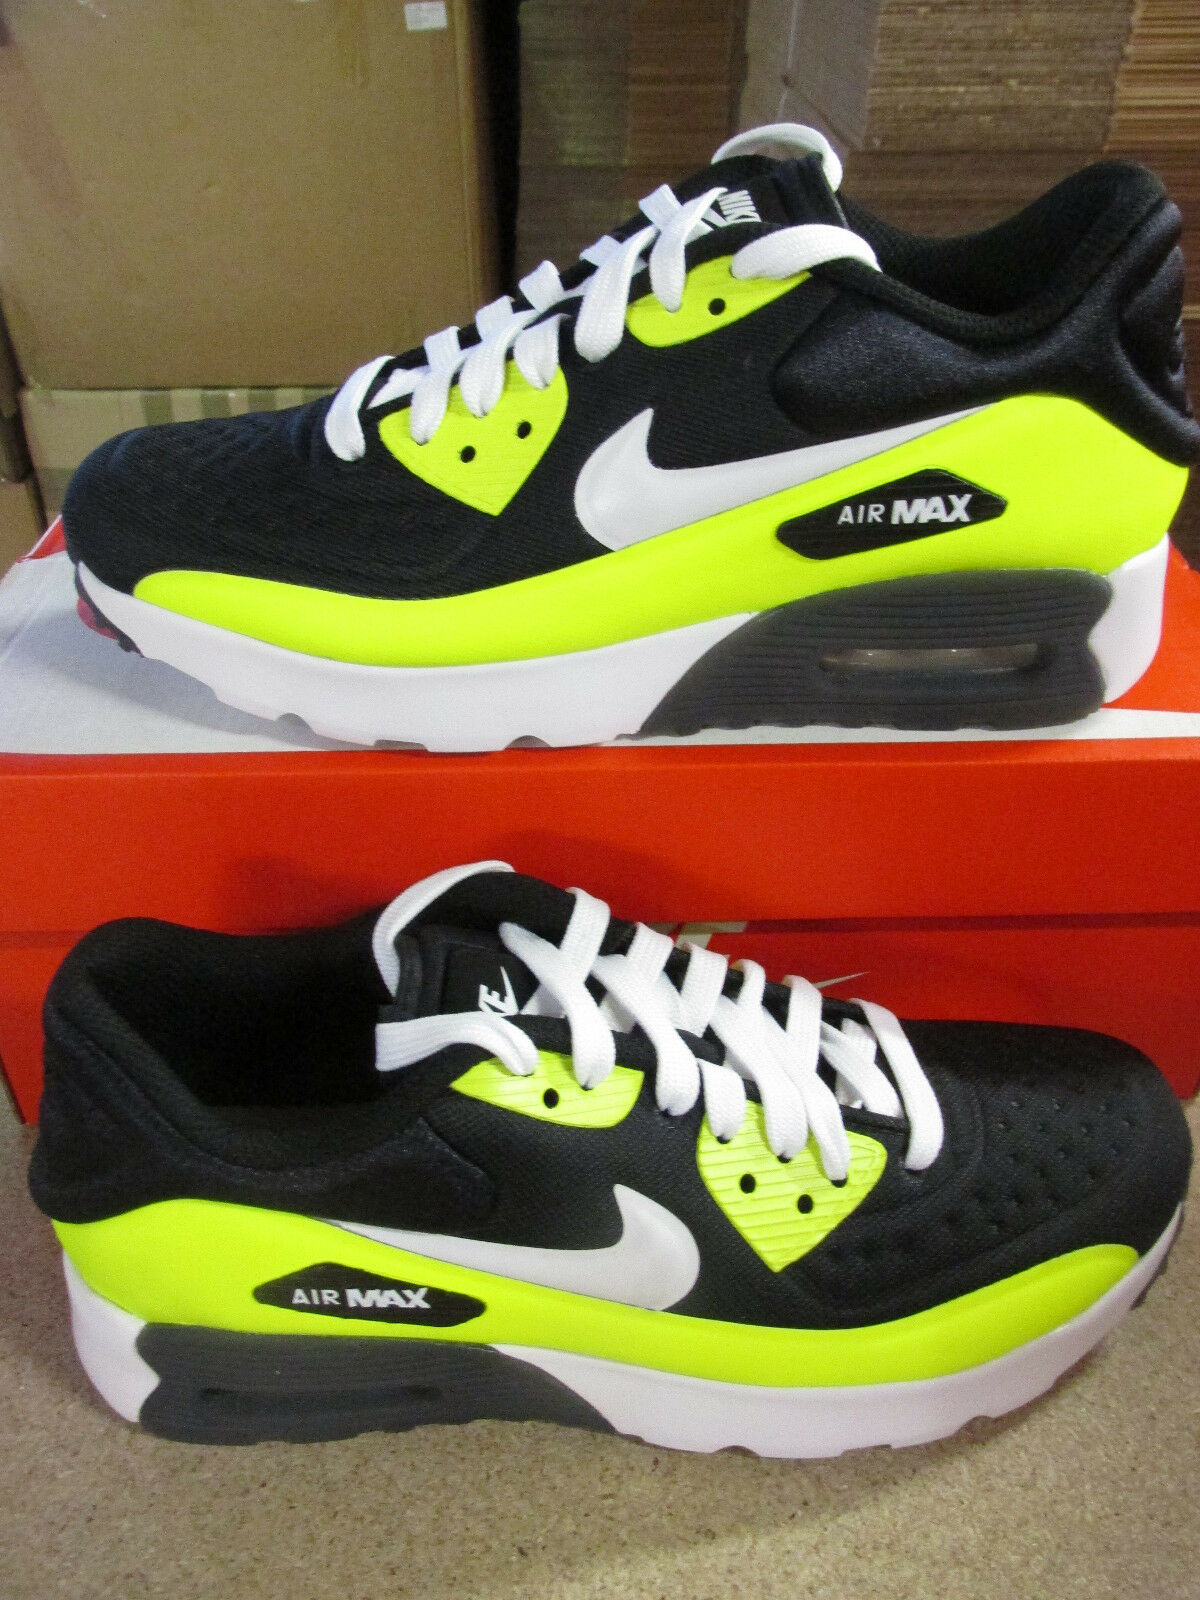 Nike air max 90 ultra se (gs) zapatillas correndo 844599 002 zapatillas